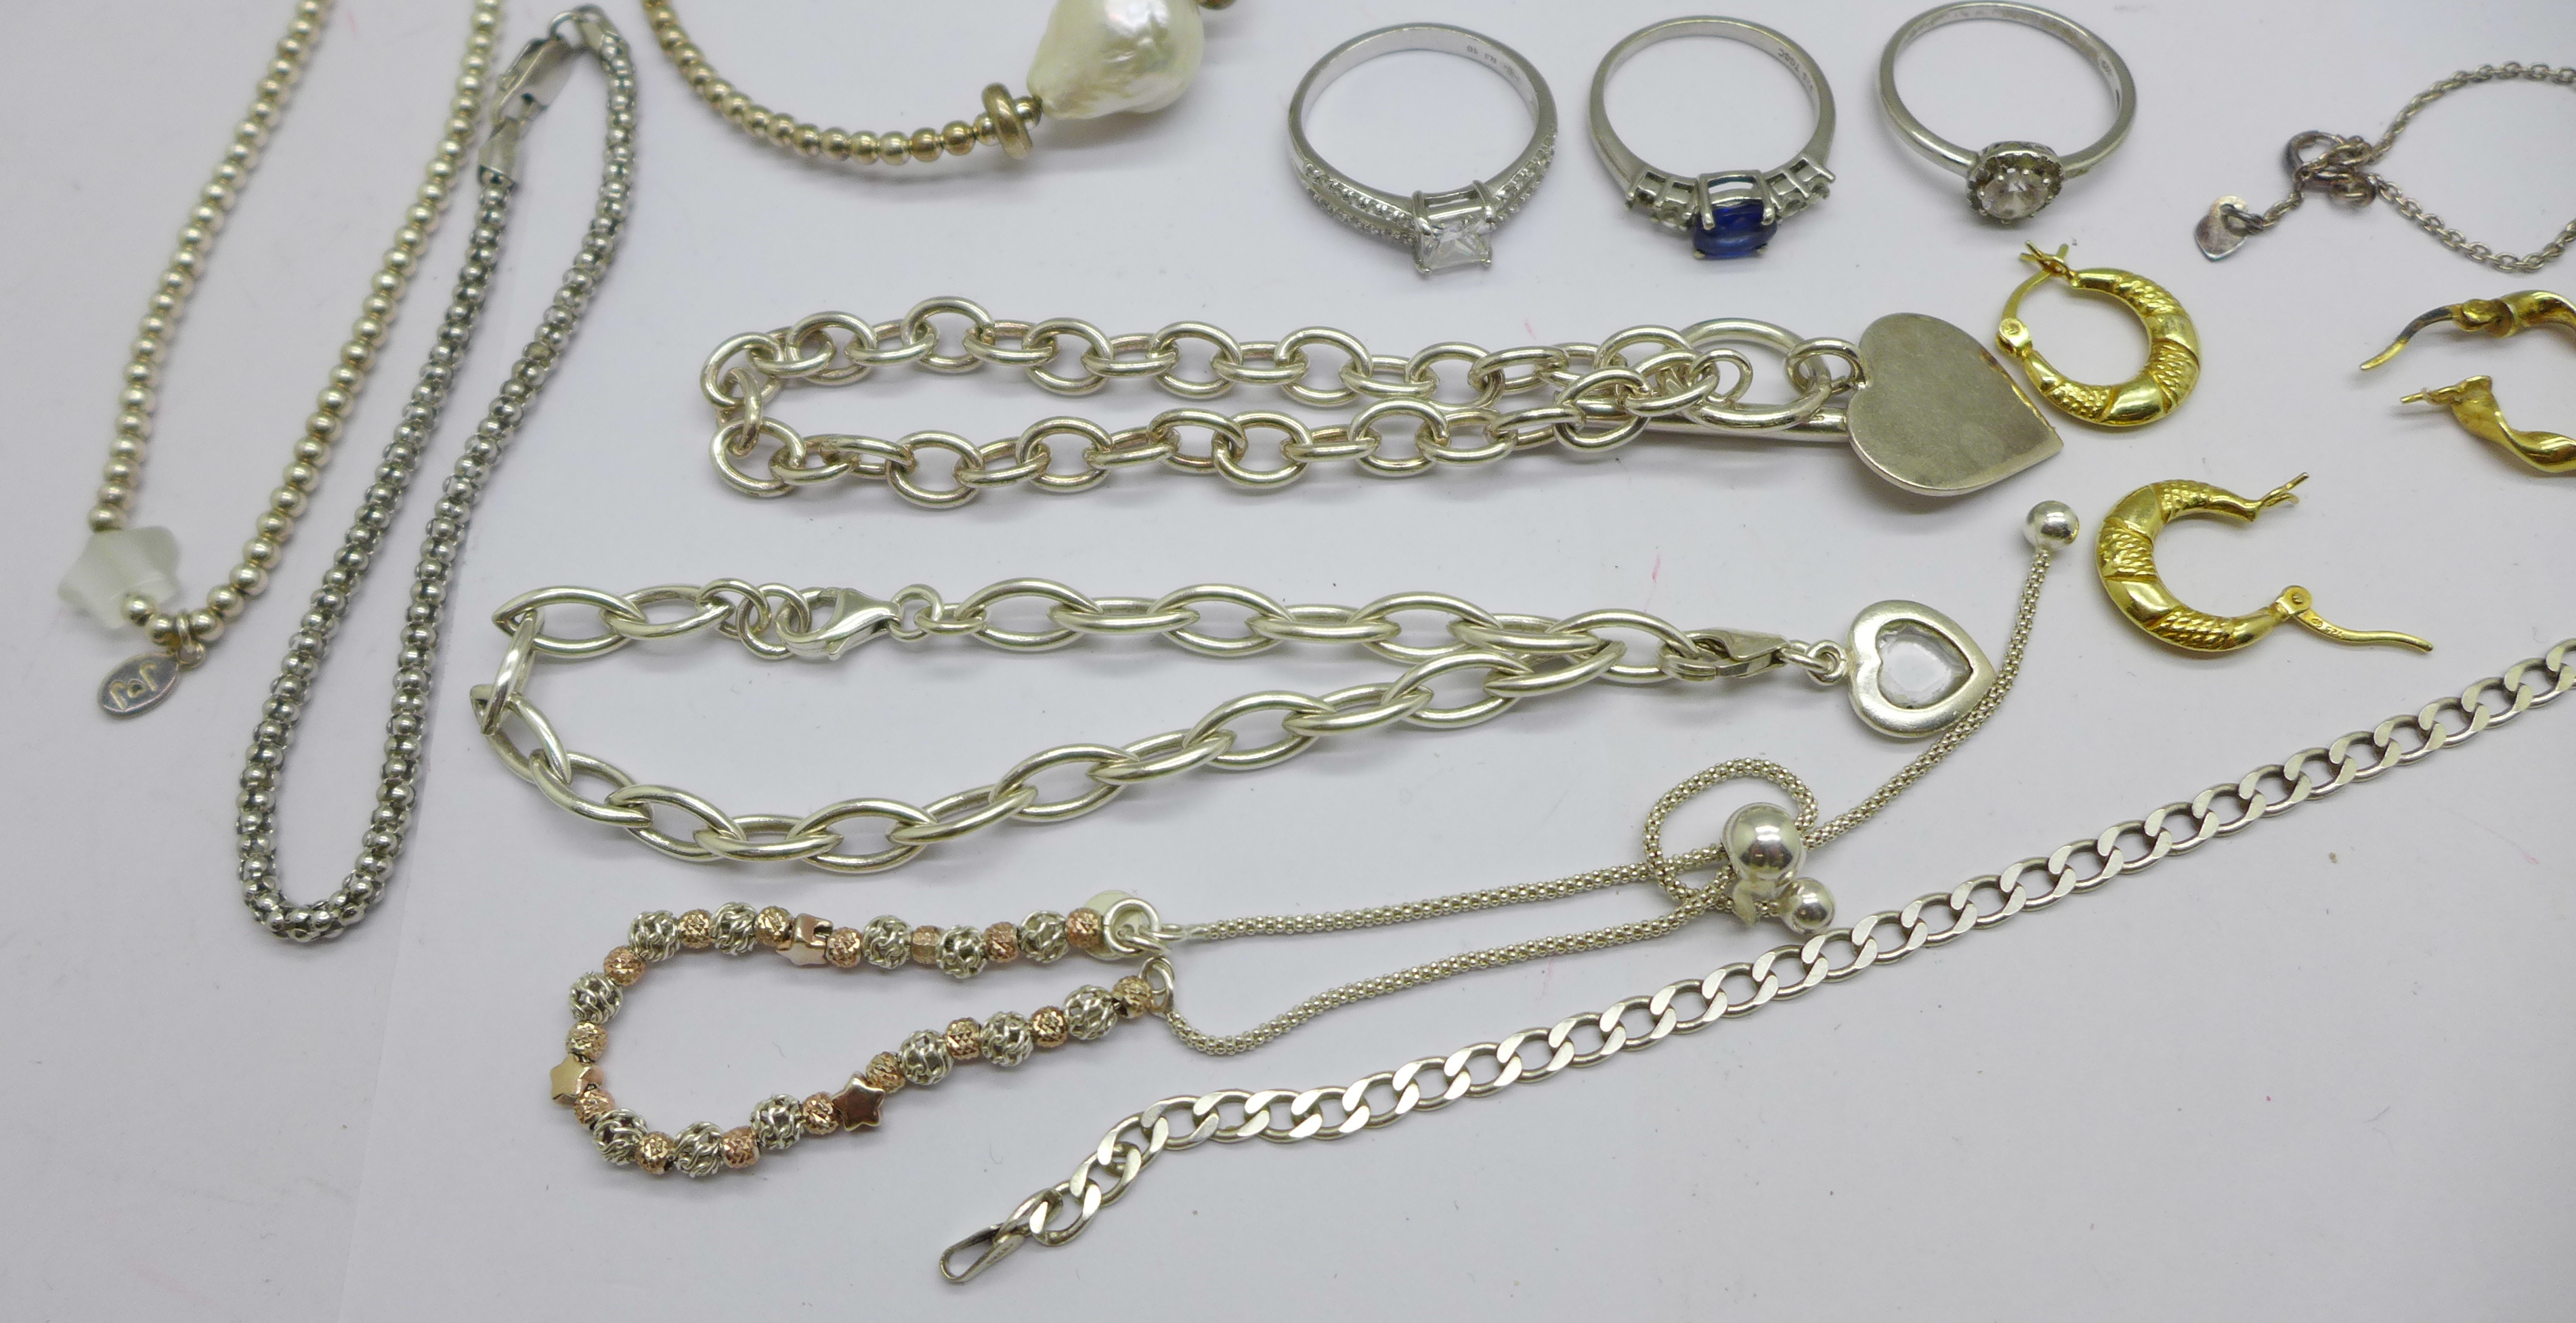 A collection of silver jewellery including bracelets, necklaces and earrings, etc., 80g - Image 2 of 3